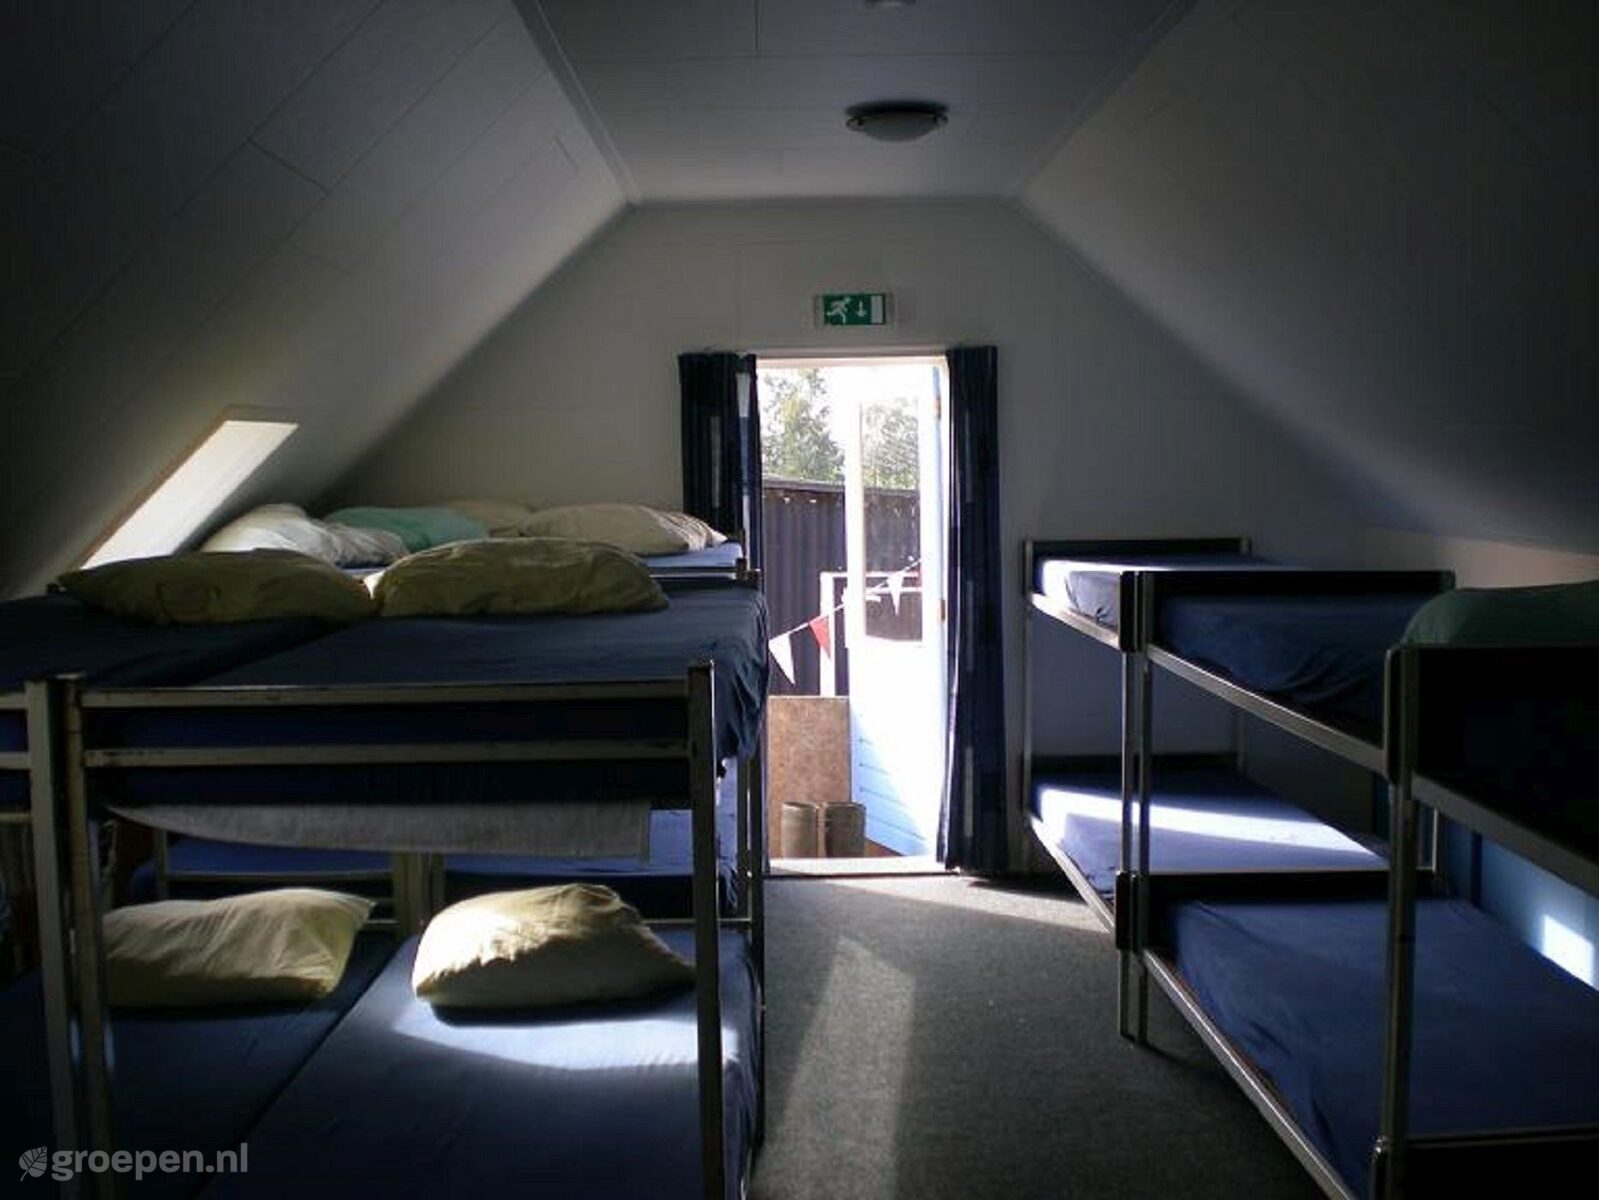 Group accommodation Zwiggelte